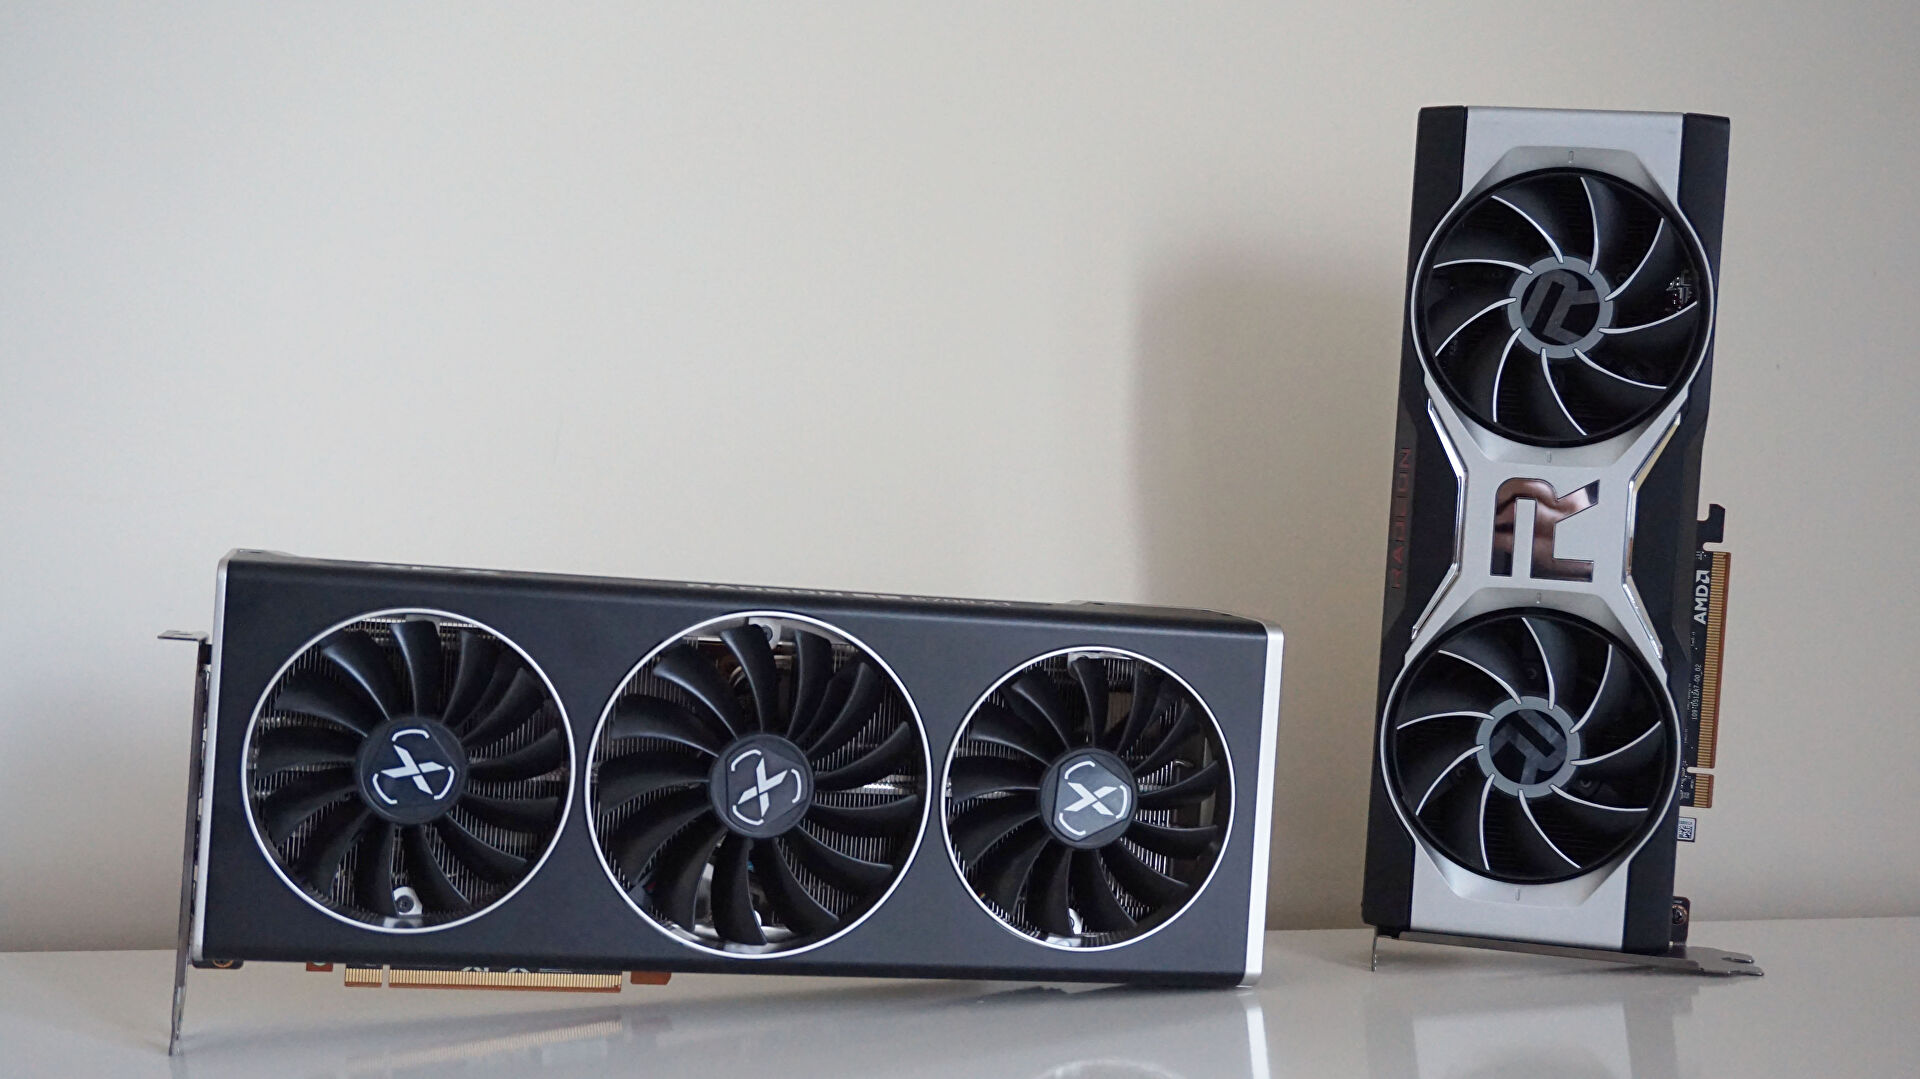 XFX's Radeon RX 6700 XT Speedster Merc 319 GPU is true to its name